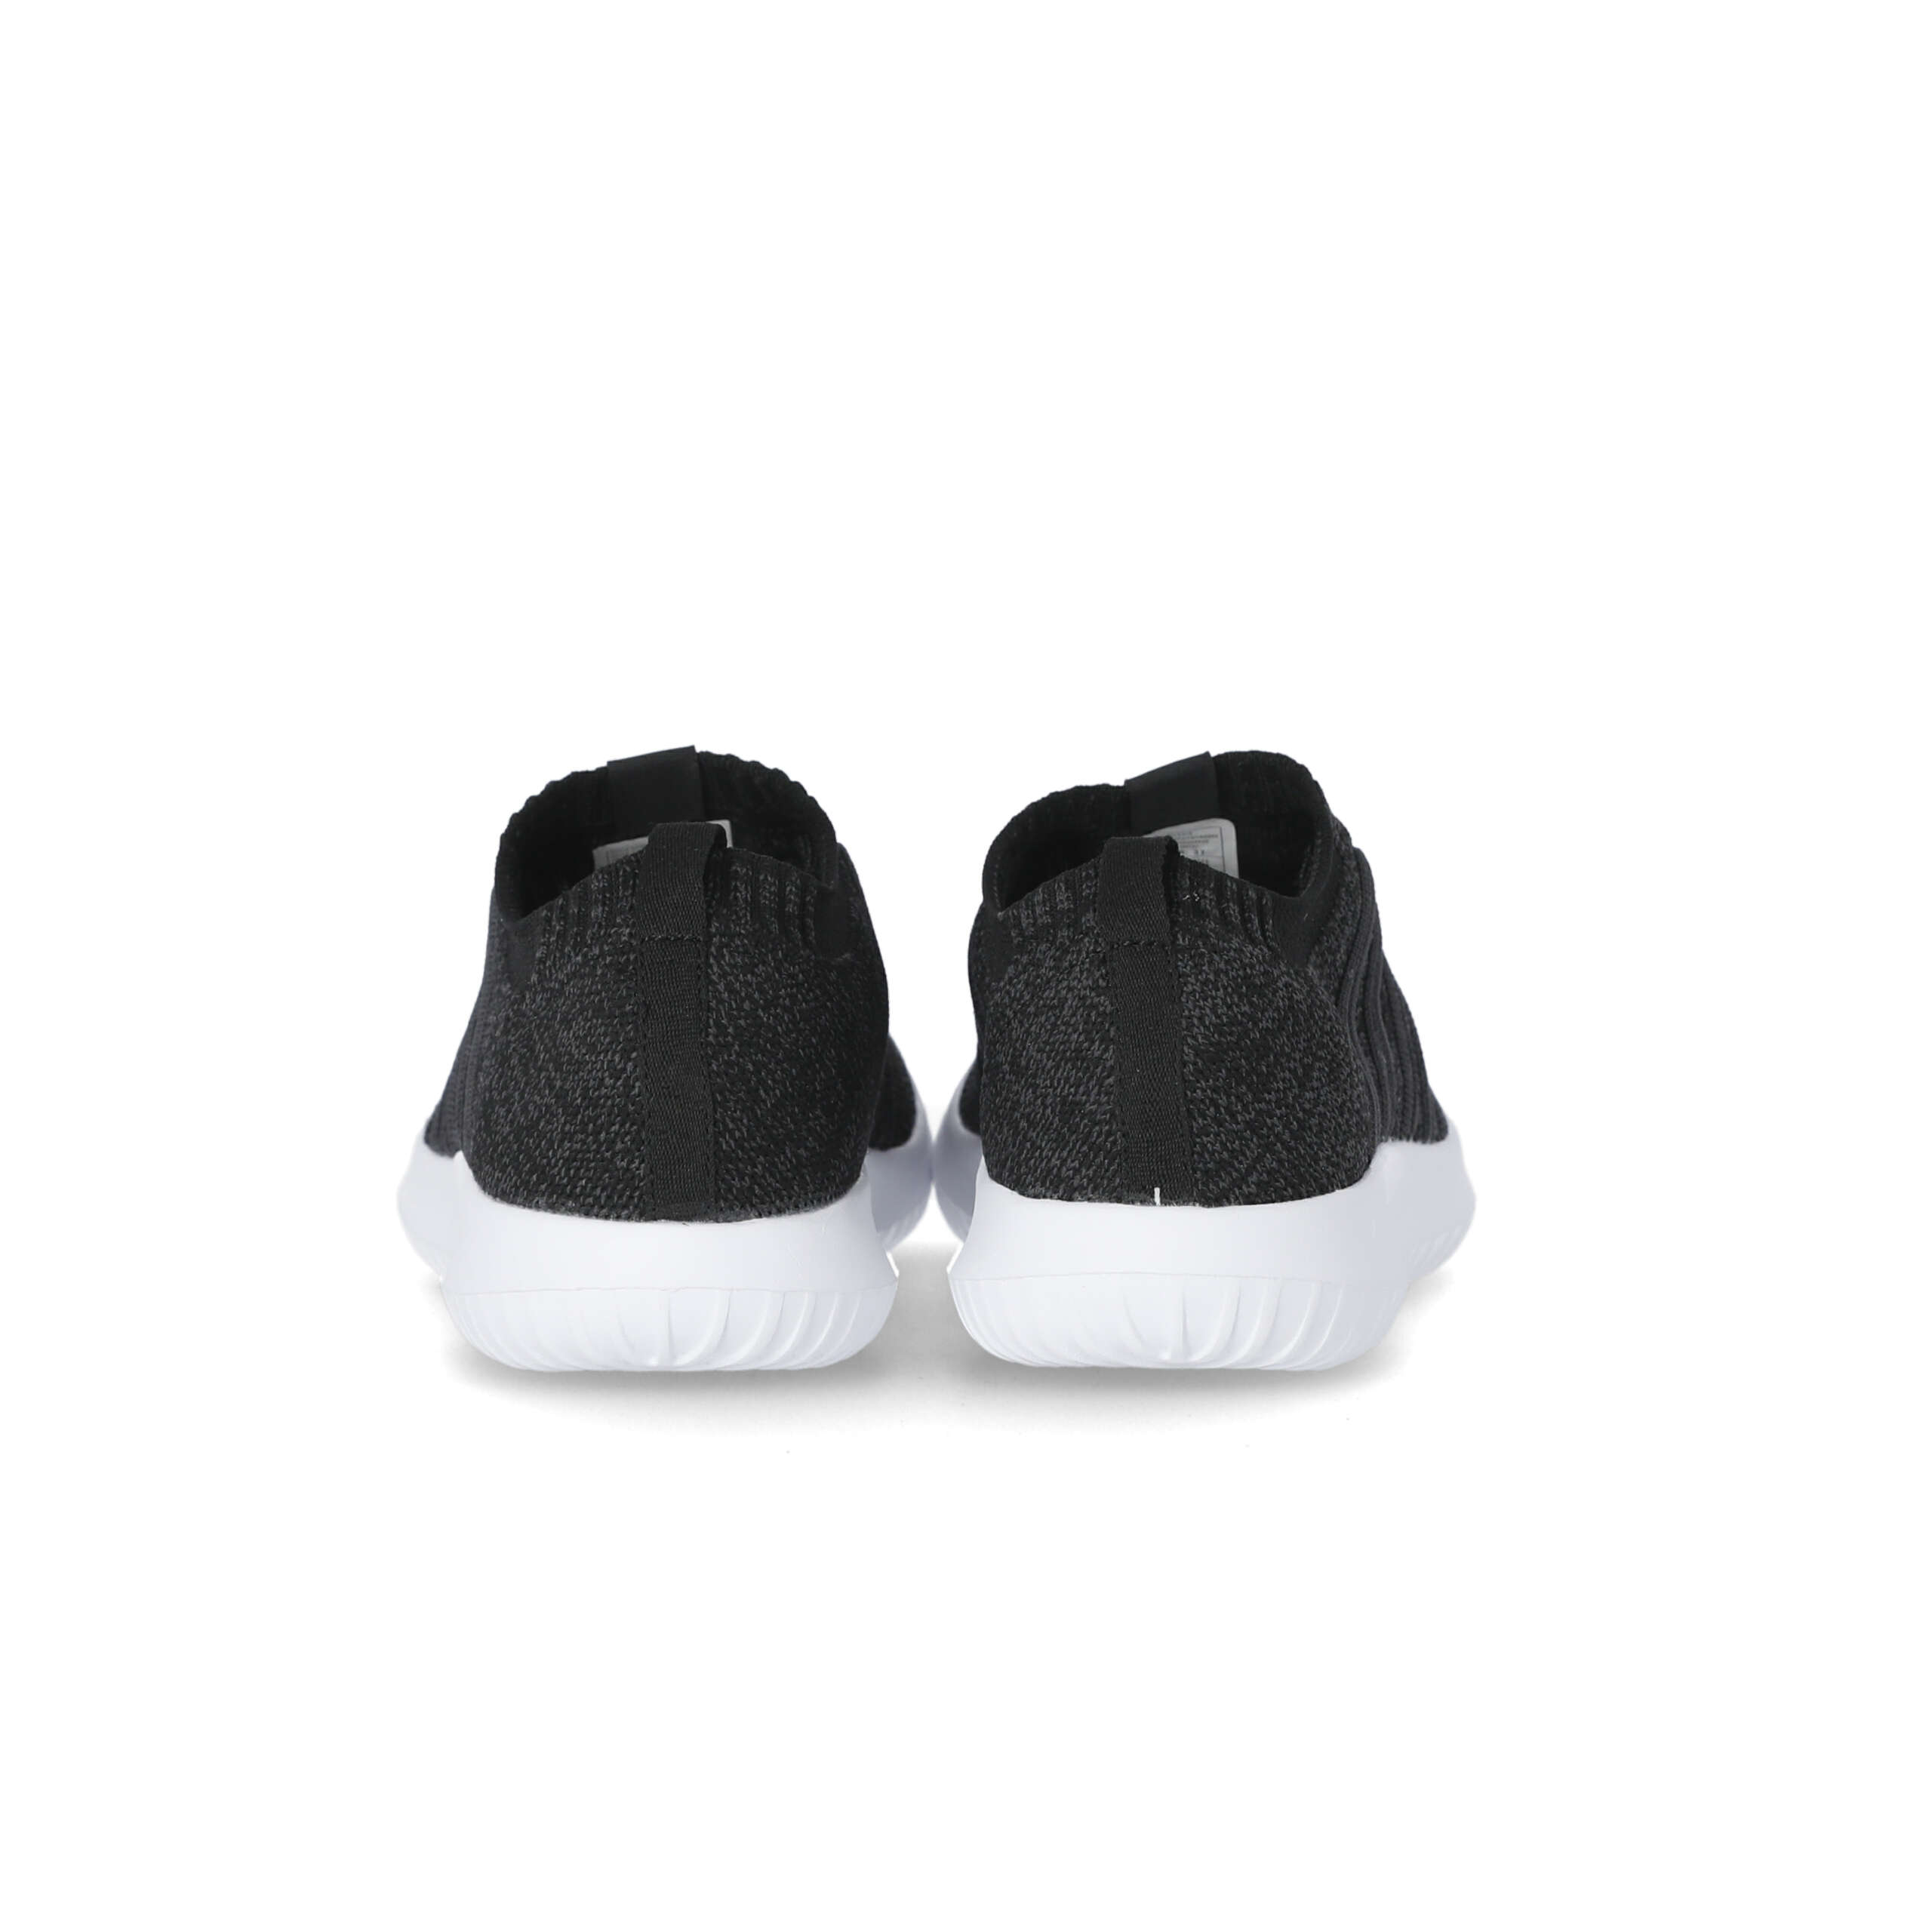 Trespass-Womens-Gym-Running-Trainers-Memory-Foam-Walking-Shoes-Alexis thumbnail 4